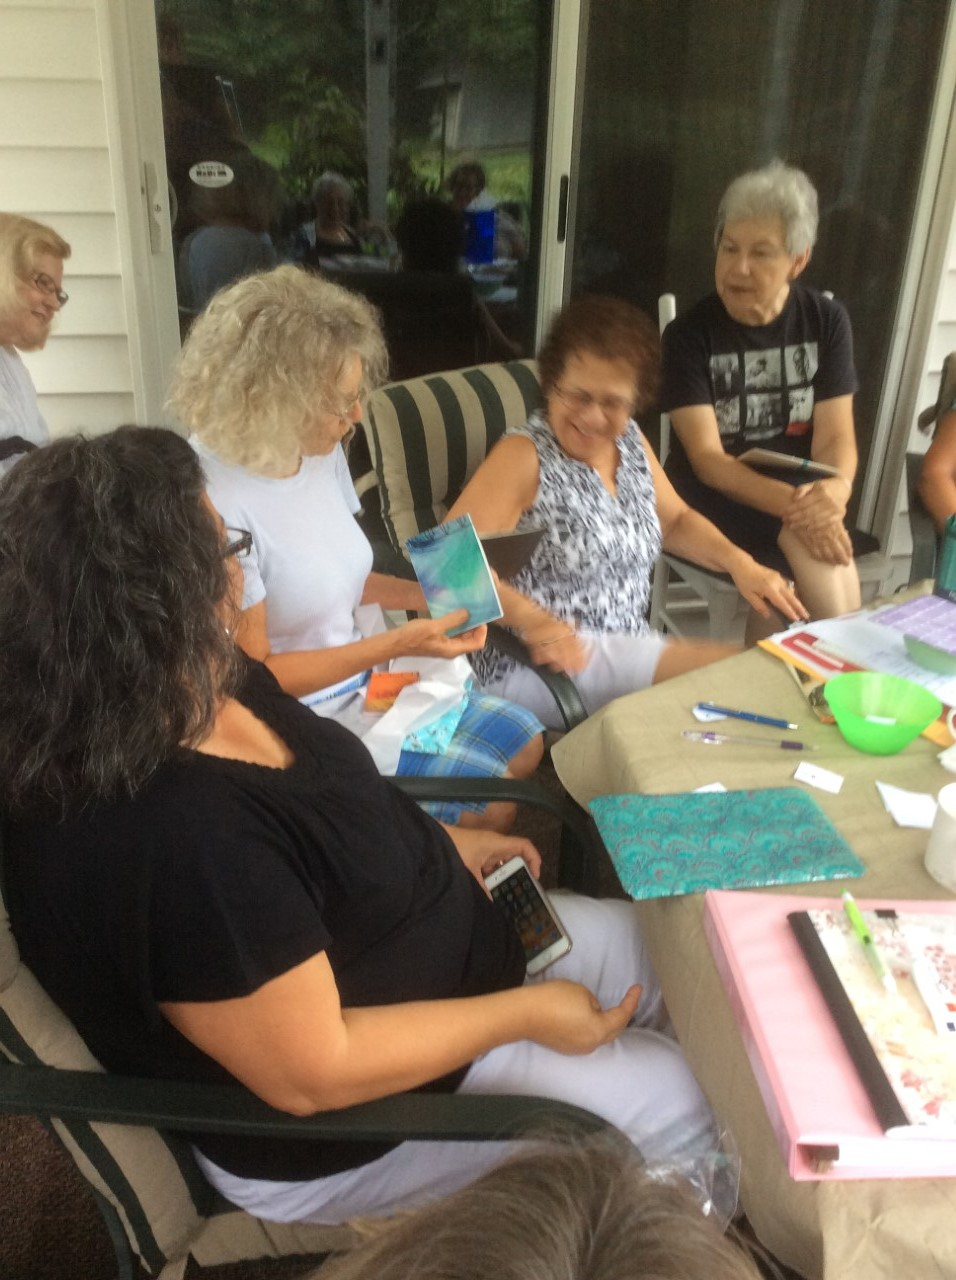 At the meeting part we discussed upcoming items like paste paper day on september 10 a workshop with lisa leblanc on october 8 october and november